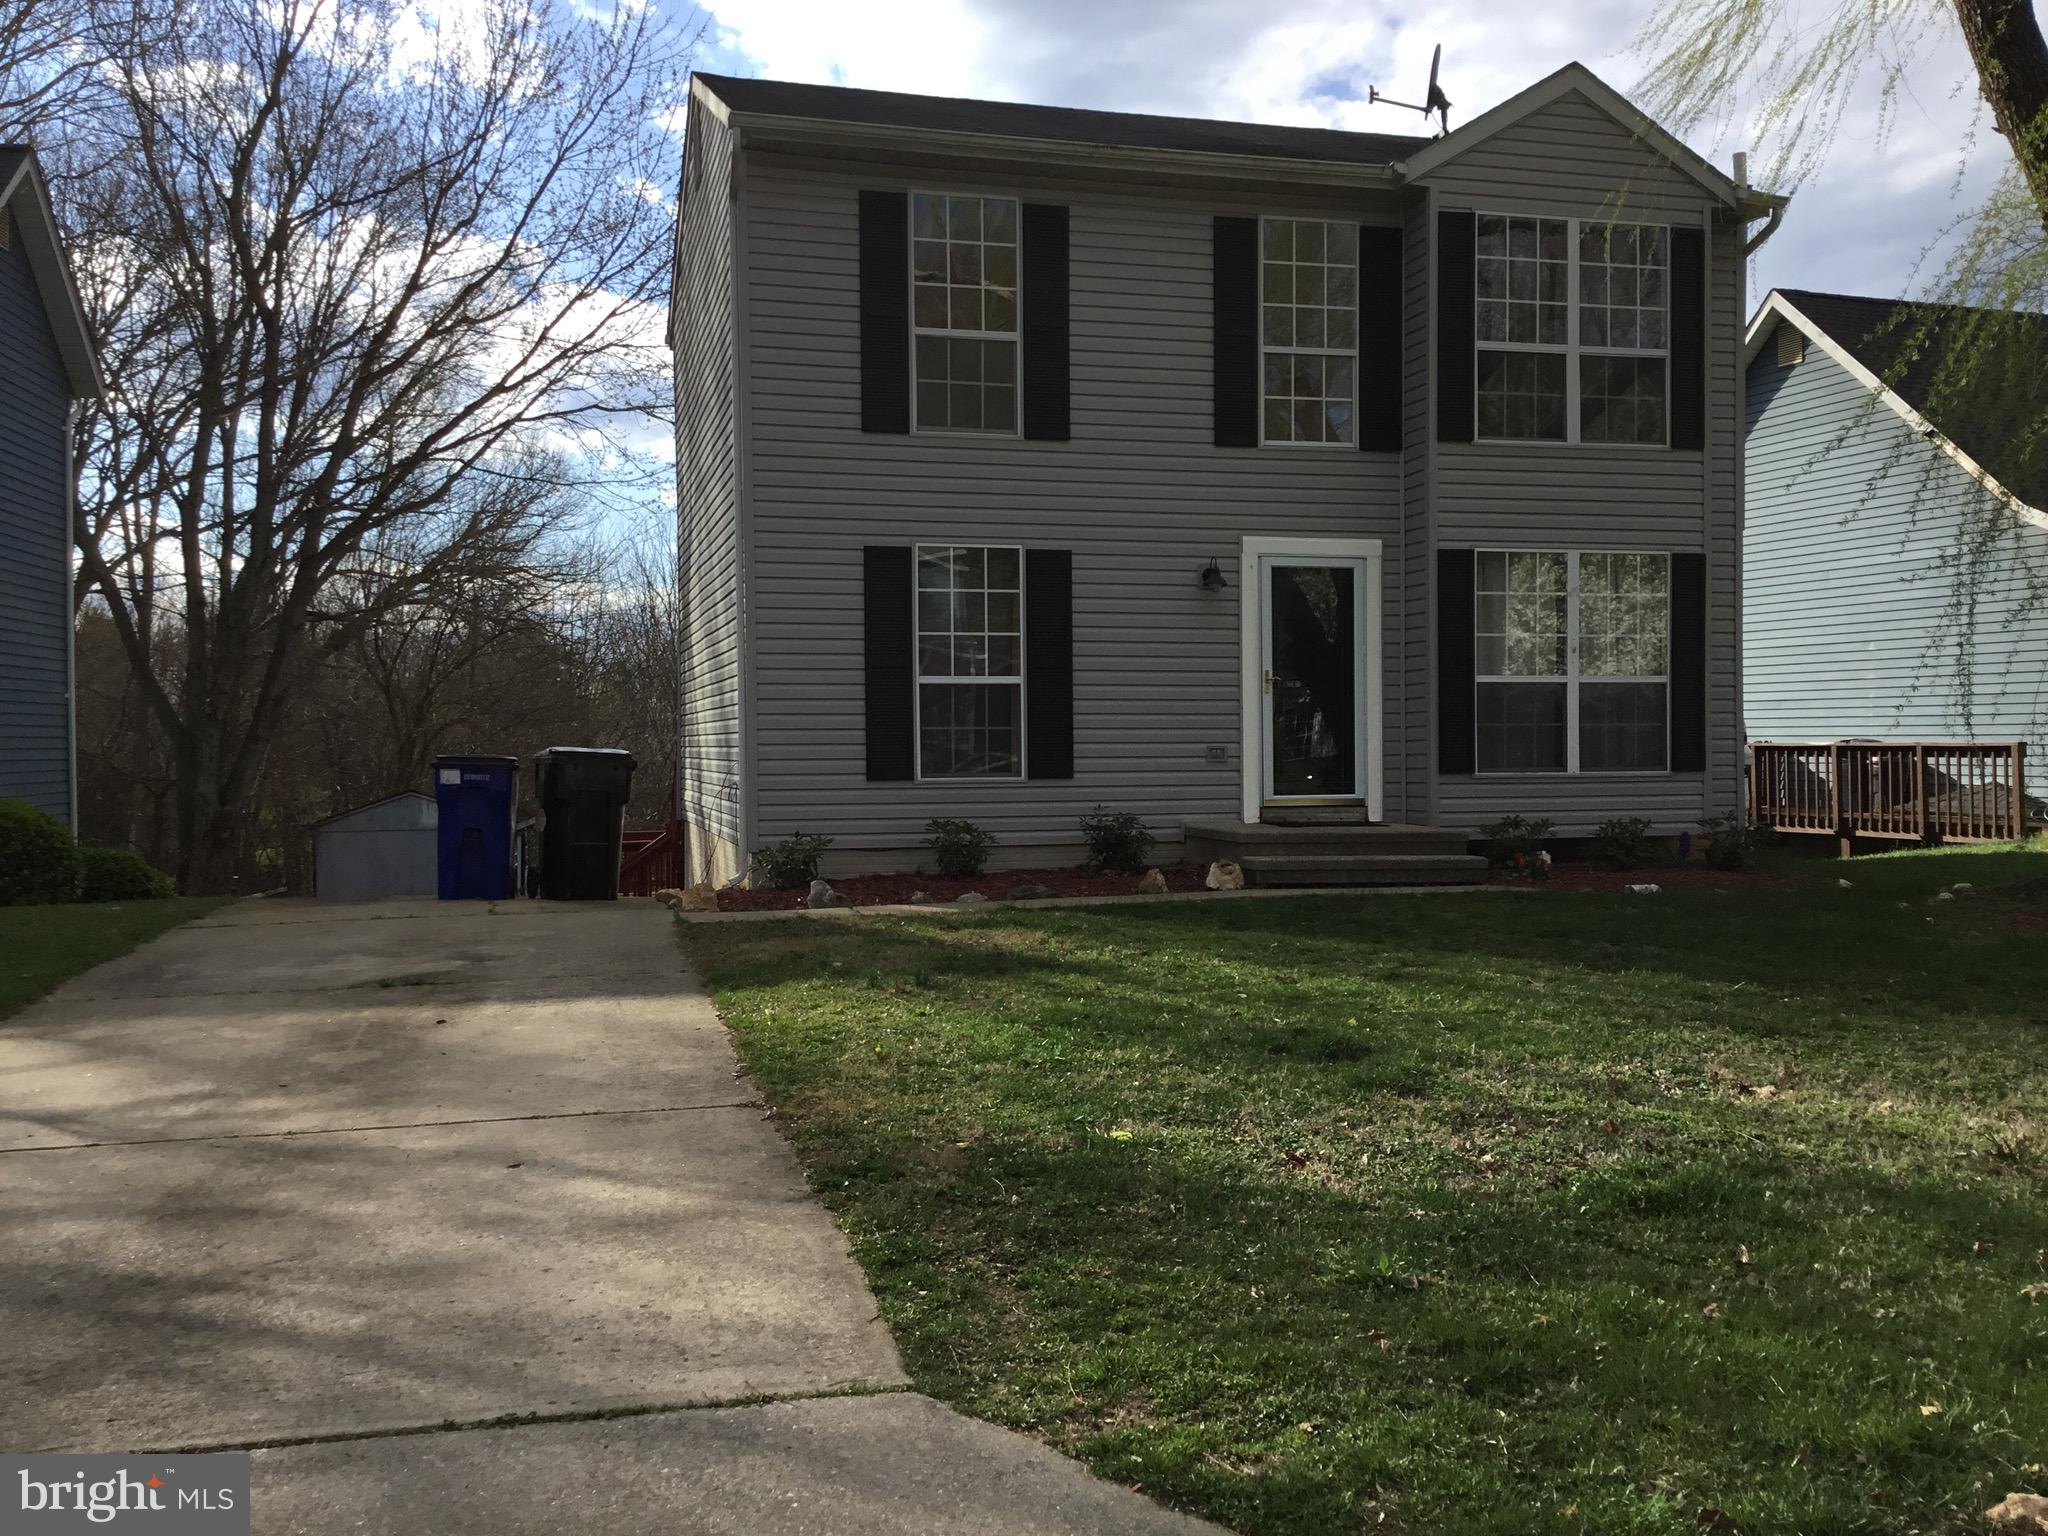 Nice 3 level home with 3 bedrooms and 2.5 bathrooms plus a den in the basement , this house has been